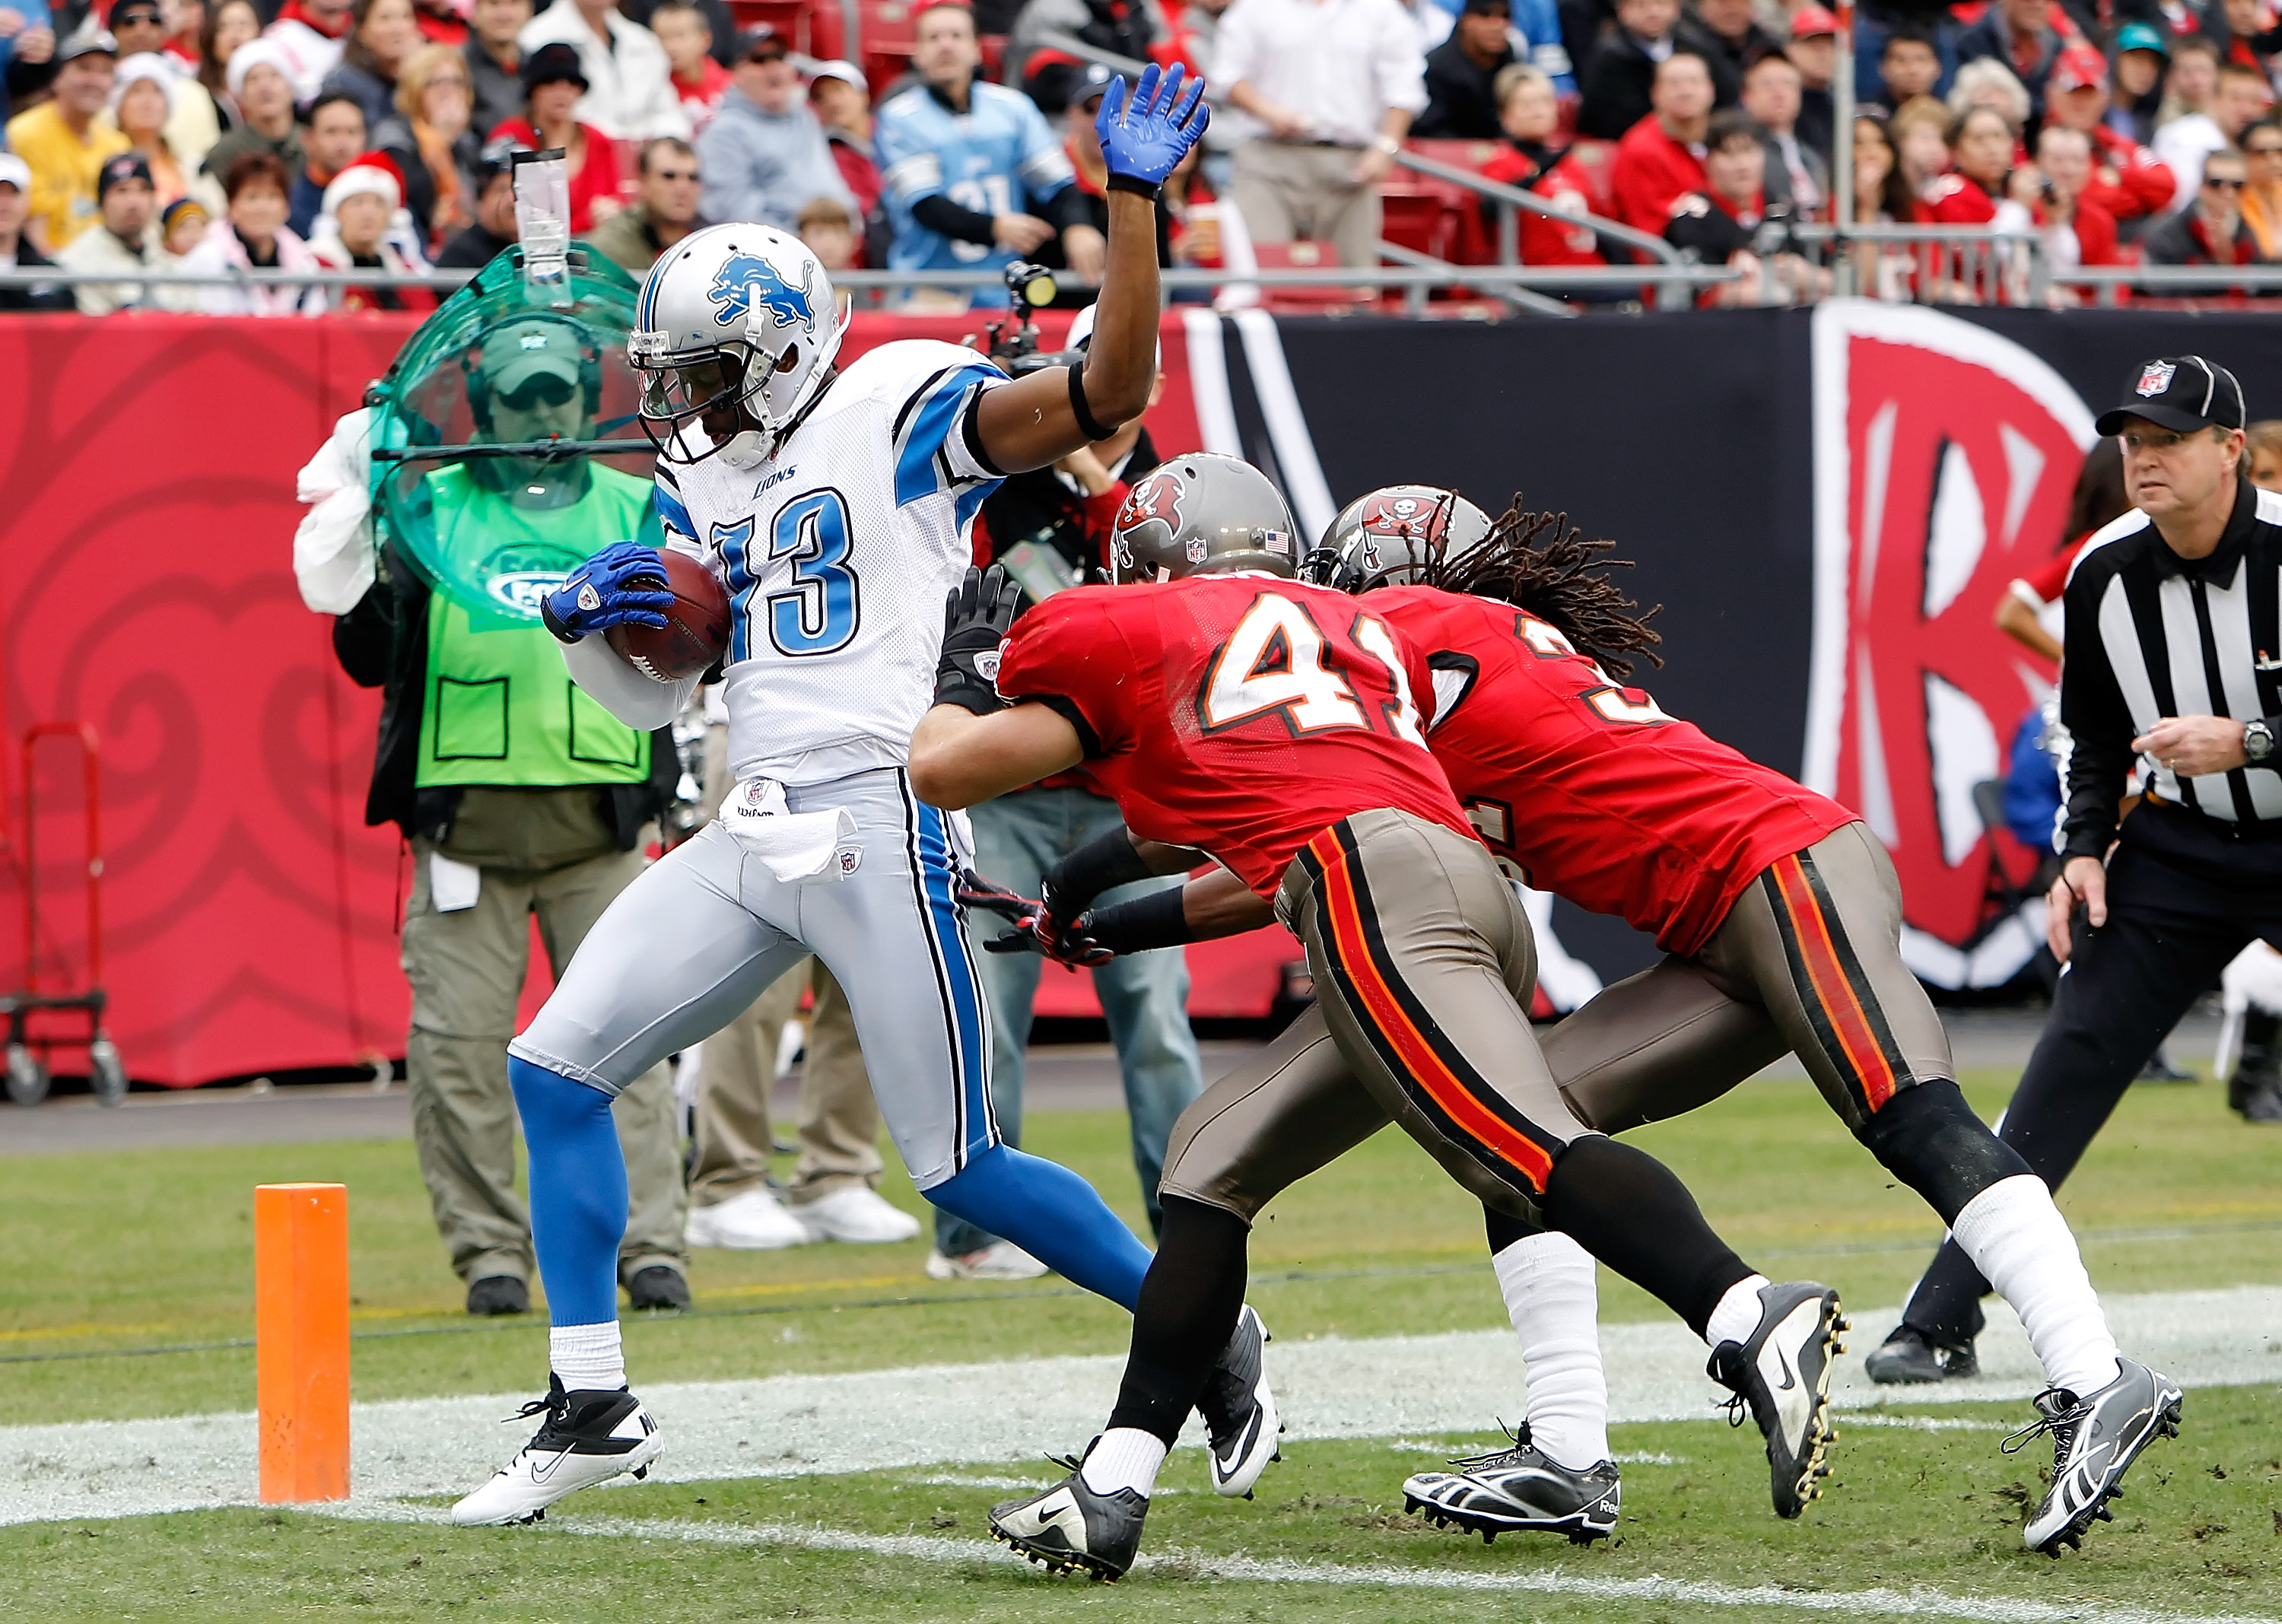 Nate Burleson provided the spark the Lions were looking for in a #2 receiver